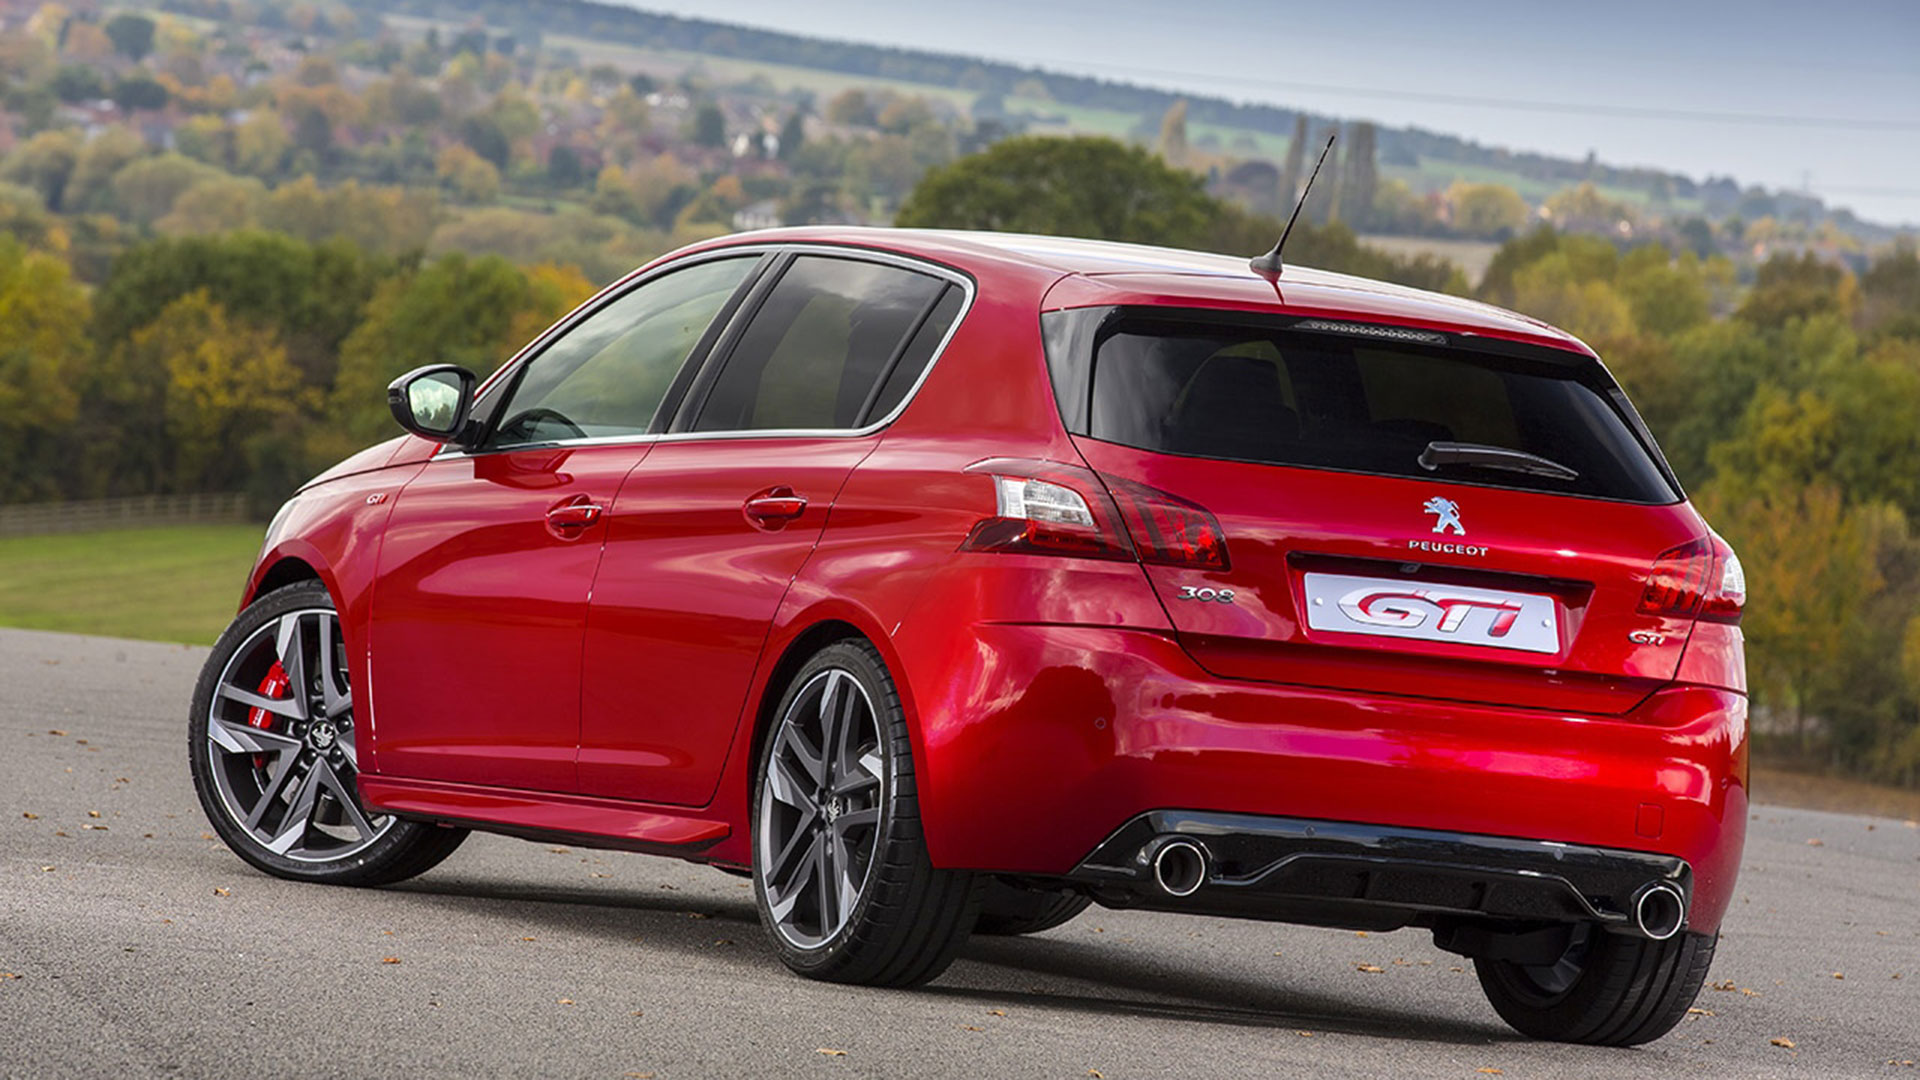 White Peugeot 308 used cars for sale on Auto Trader UK